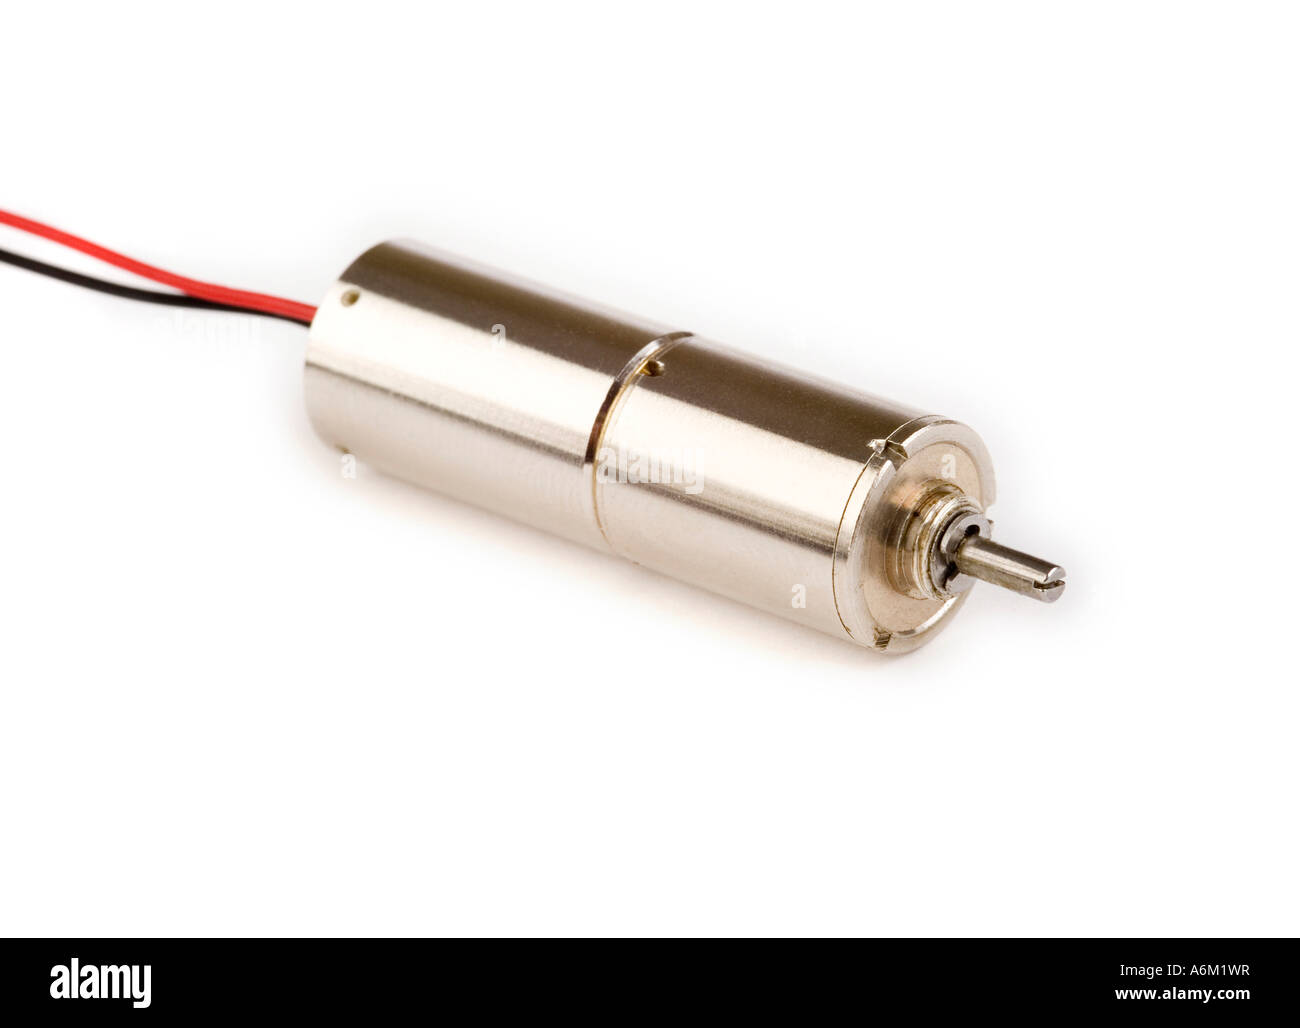 Tiny Dc Electric Motor With Gearbox Stock Photo 11603842 Alamy Electronic Fuse